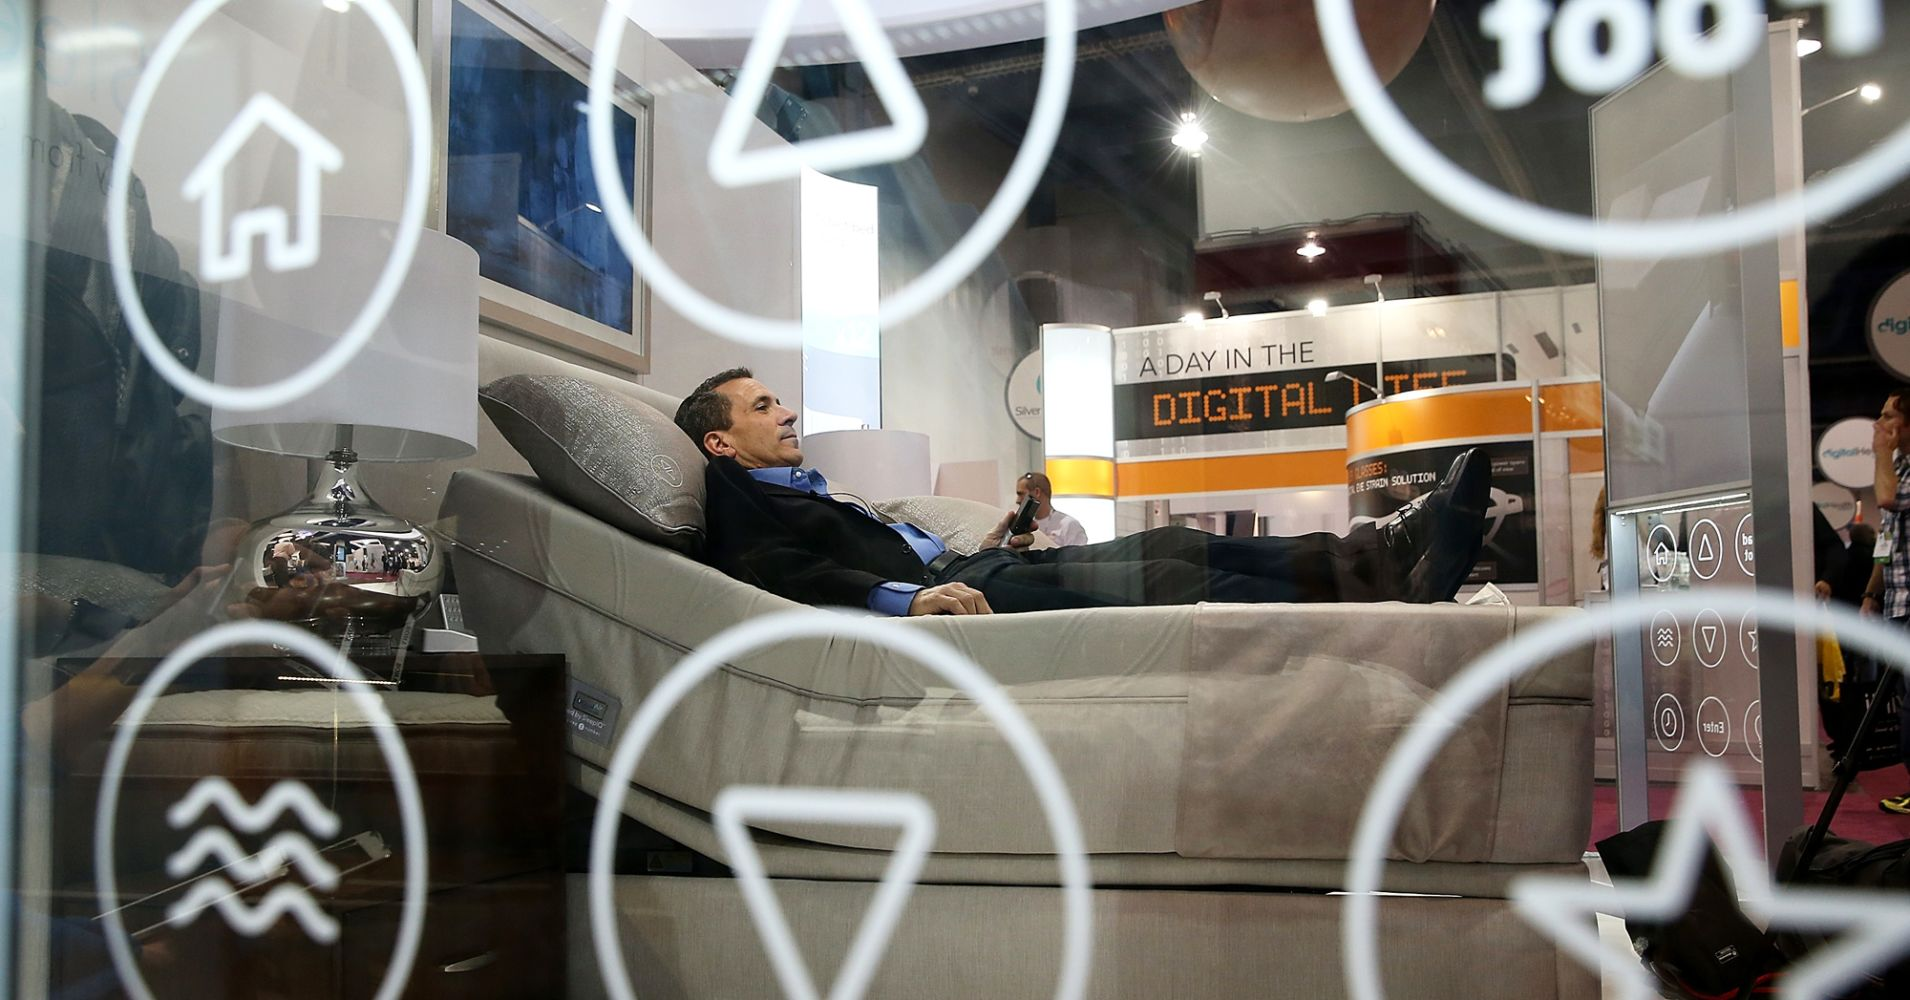 Sleep Number shares getting pummeled after earnings letdown